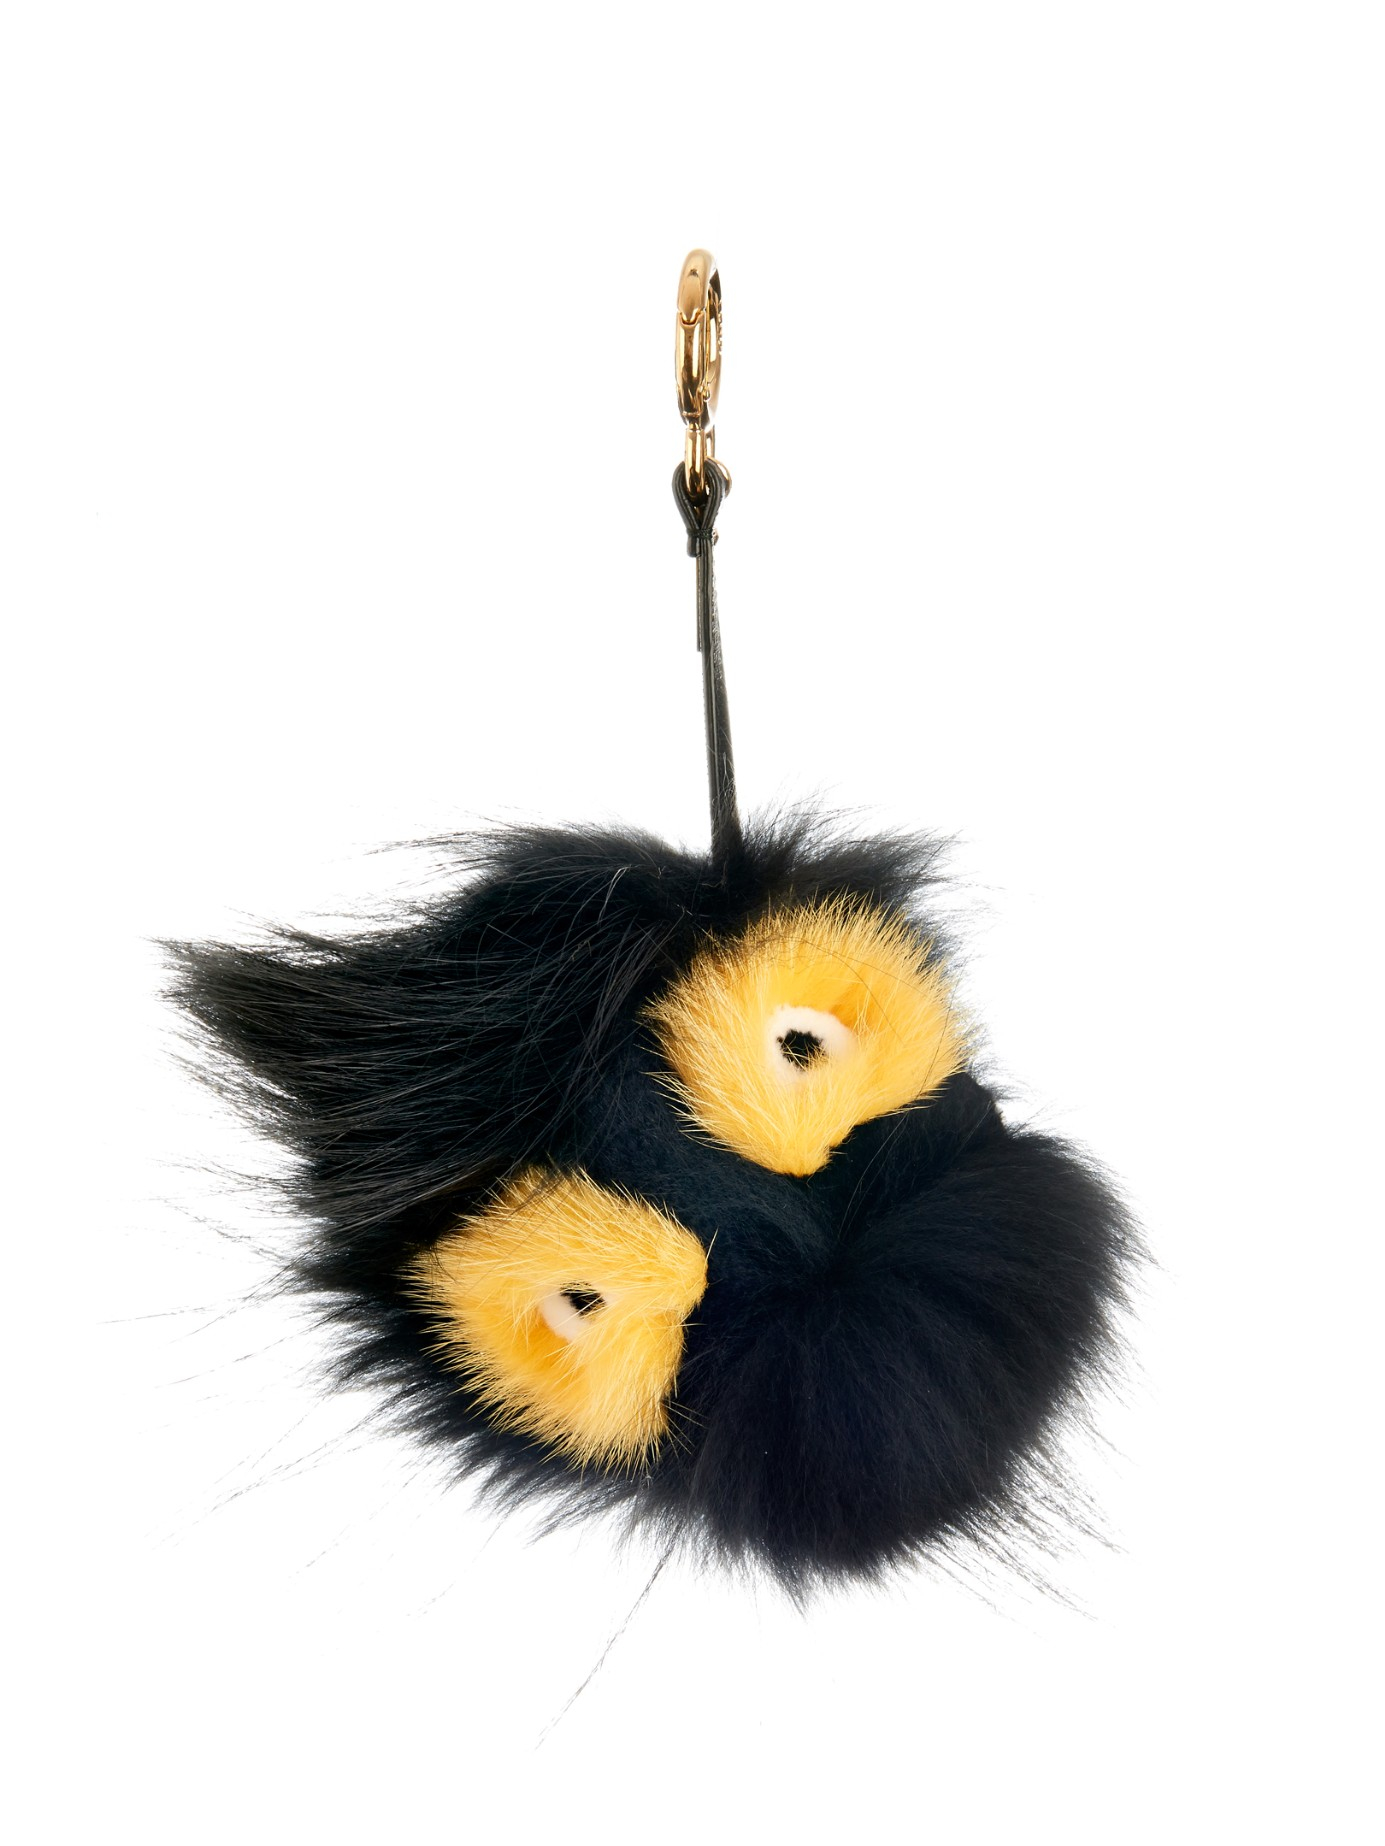 ae7c1d89fdaf Lyst - Fendi Archy Fox And Mink-Fur Bag Charm in Black